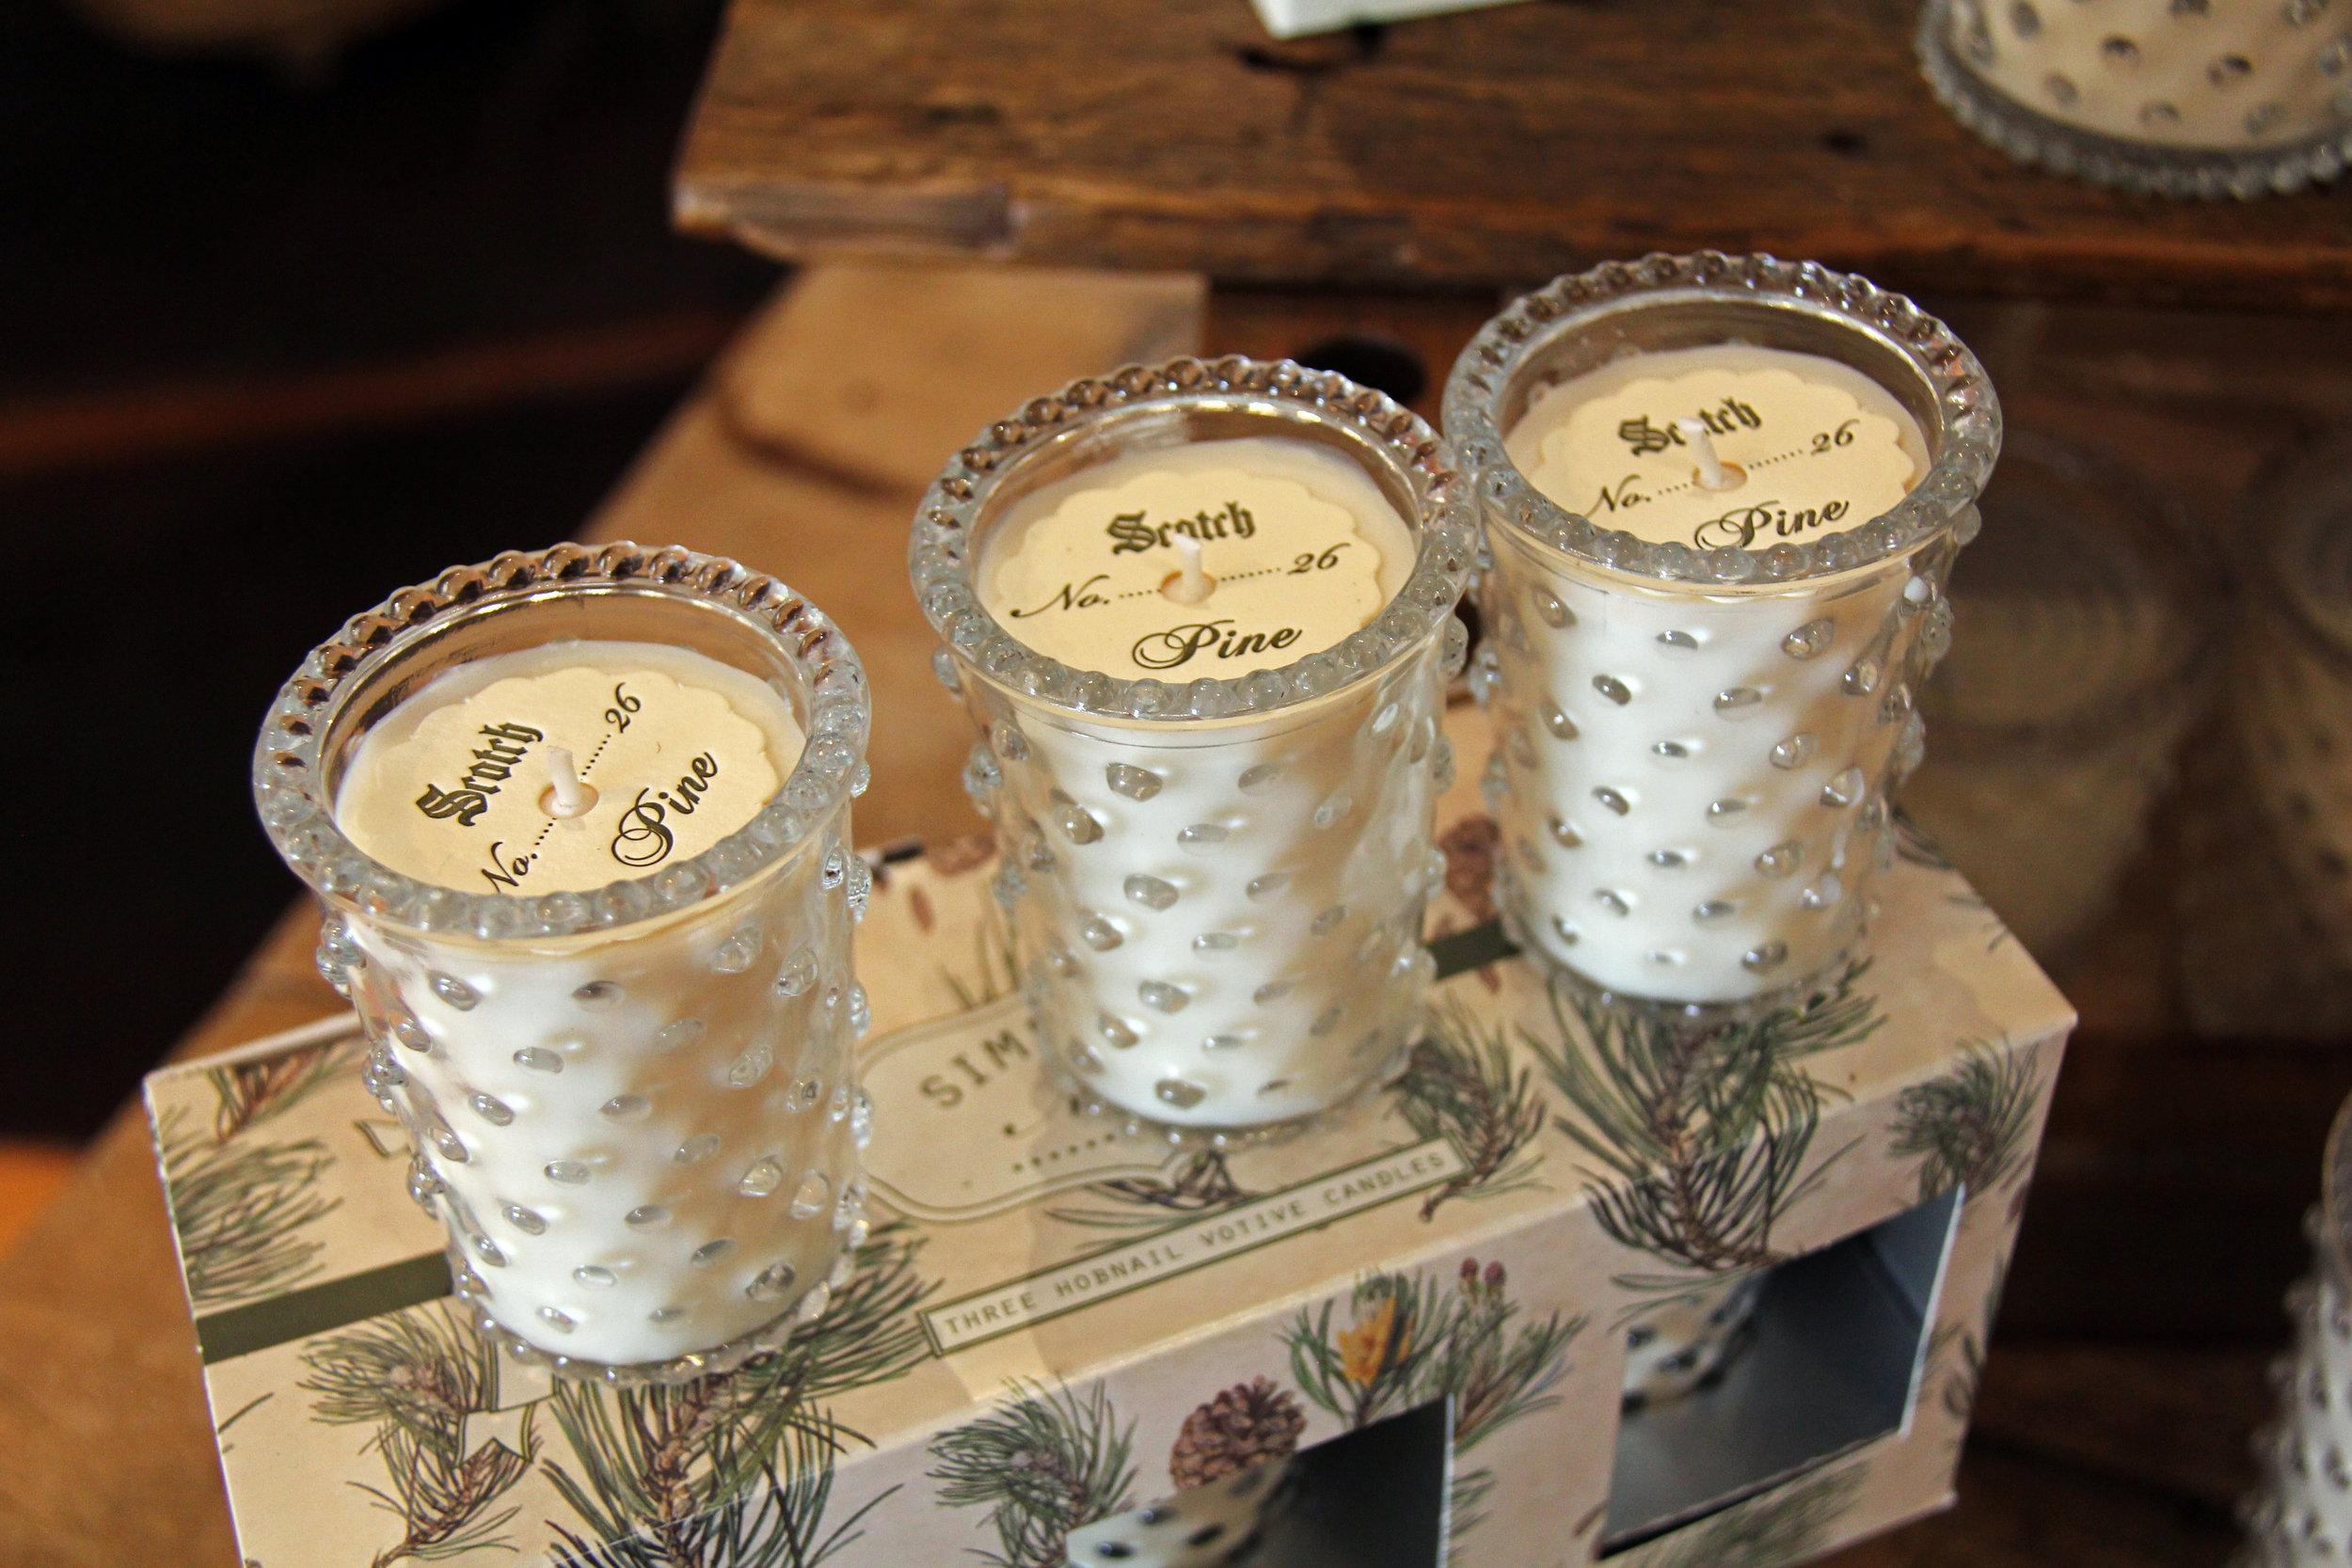 Sets of three & individual Scotch Pine hobnail candles